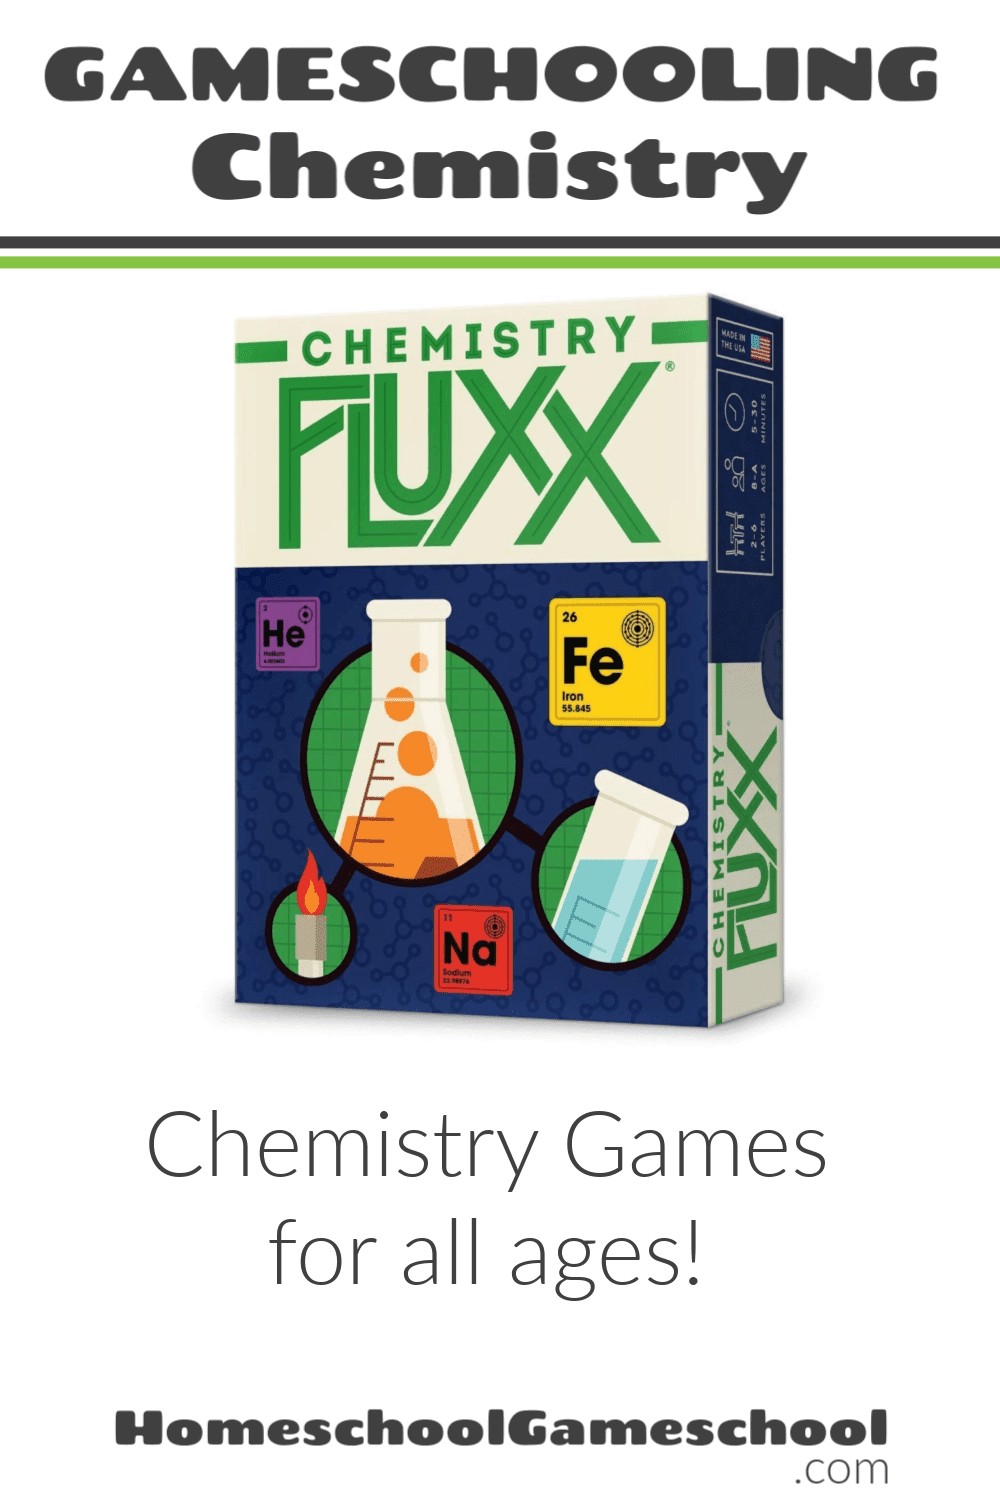 Games that Teach Chemistry